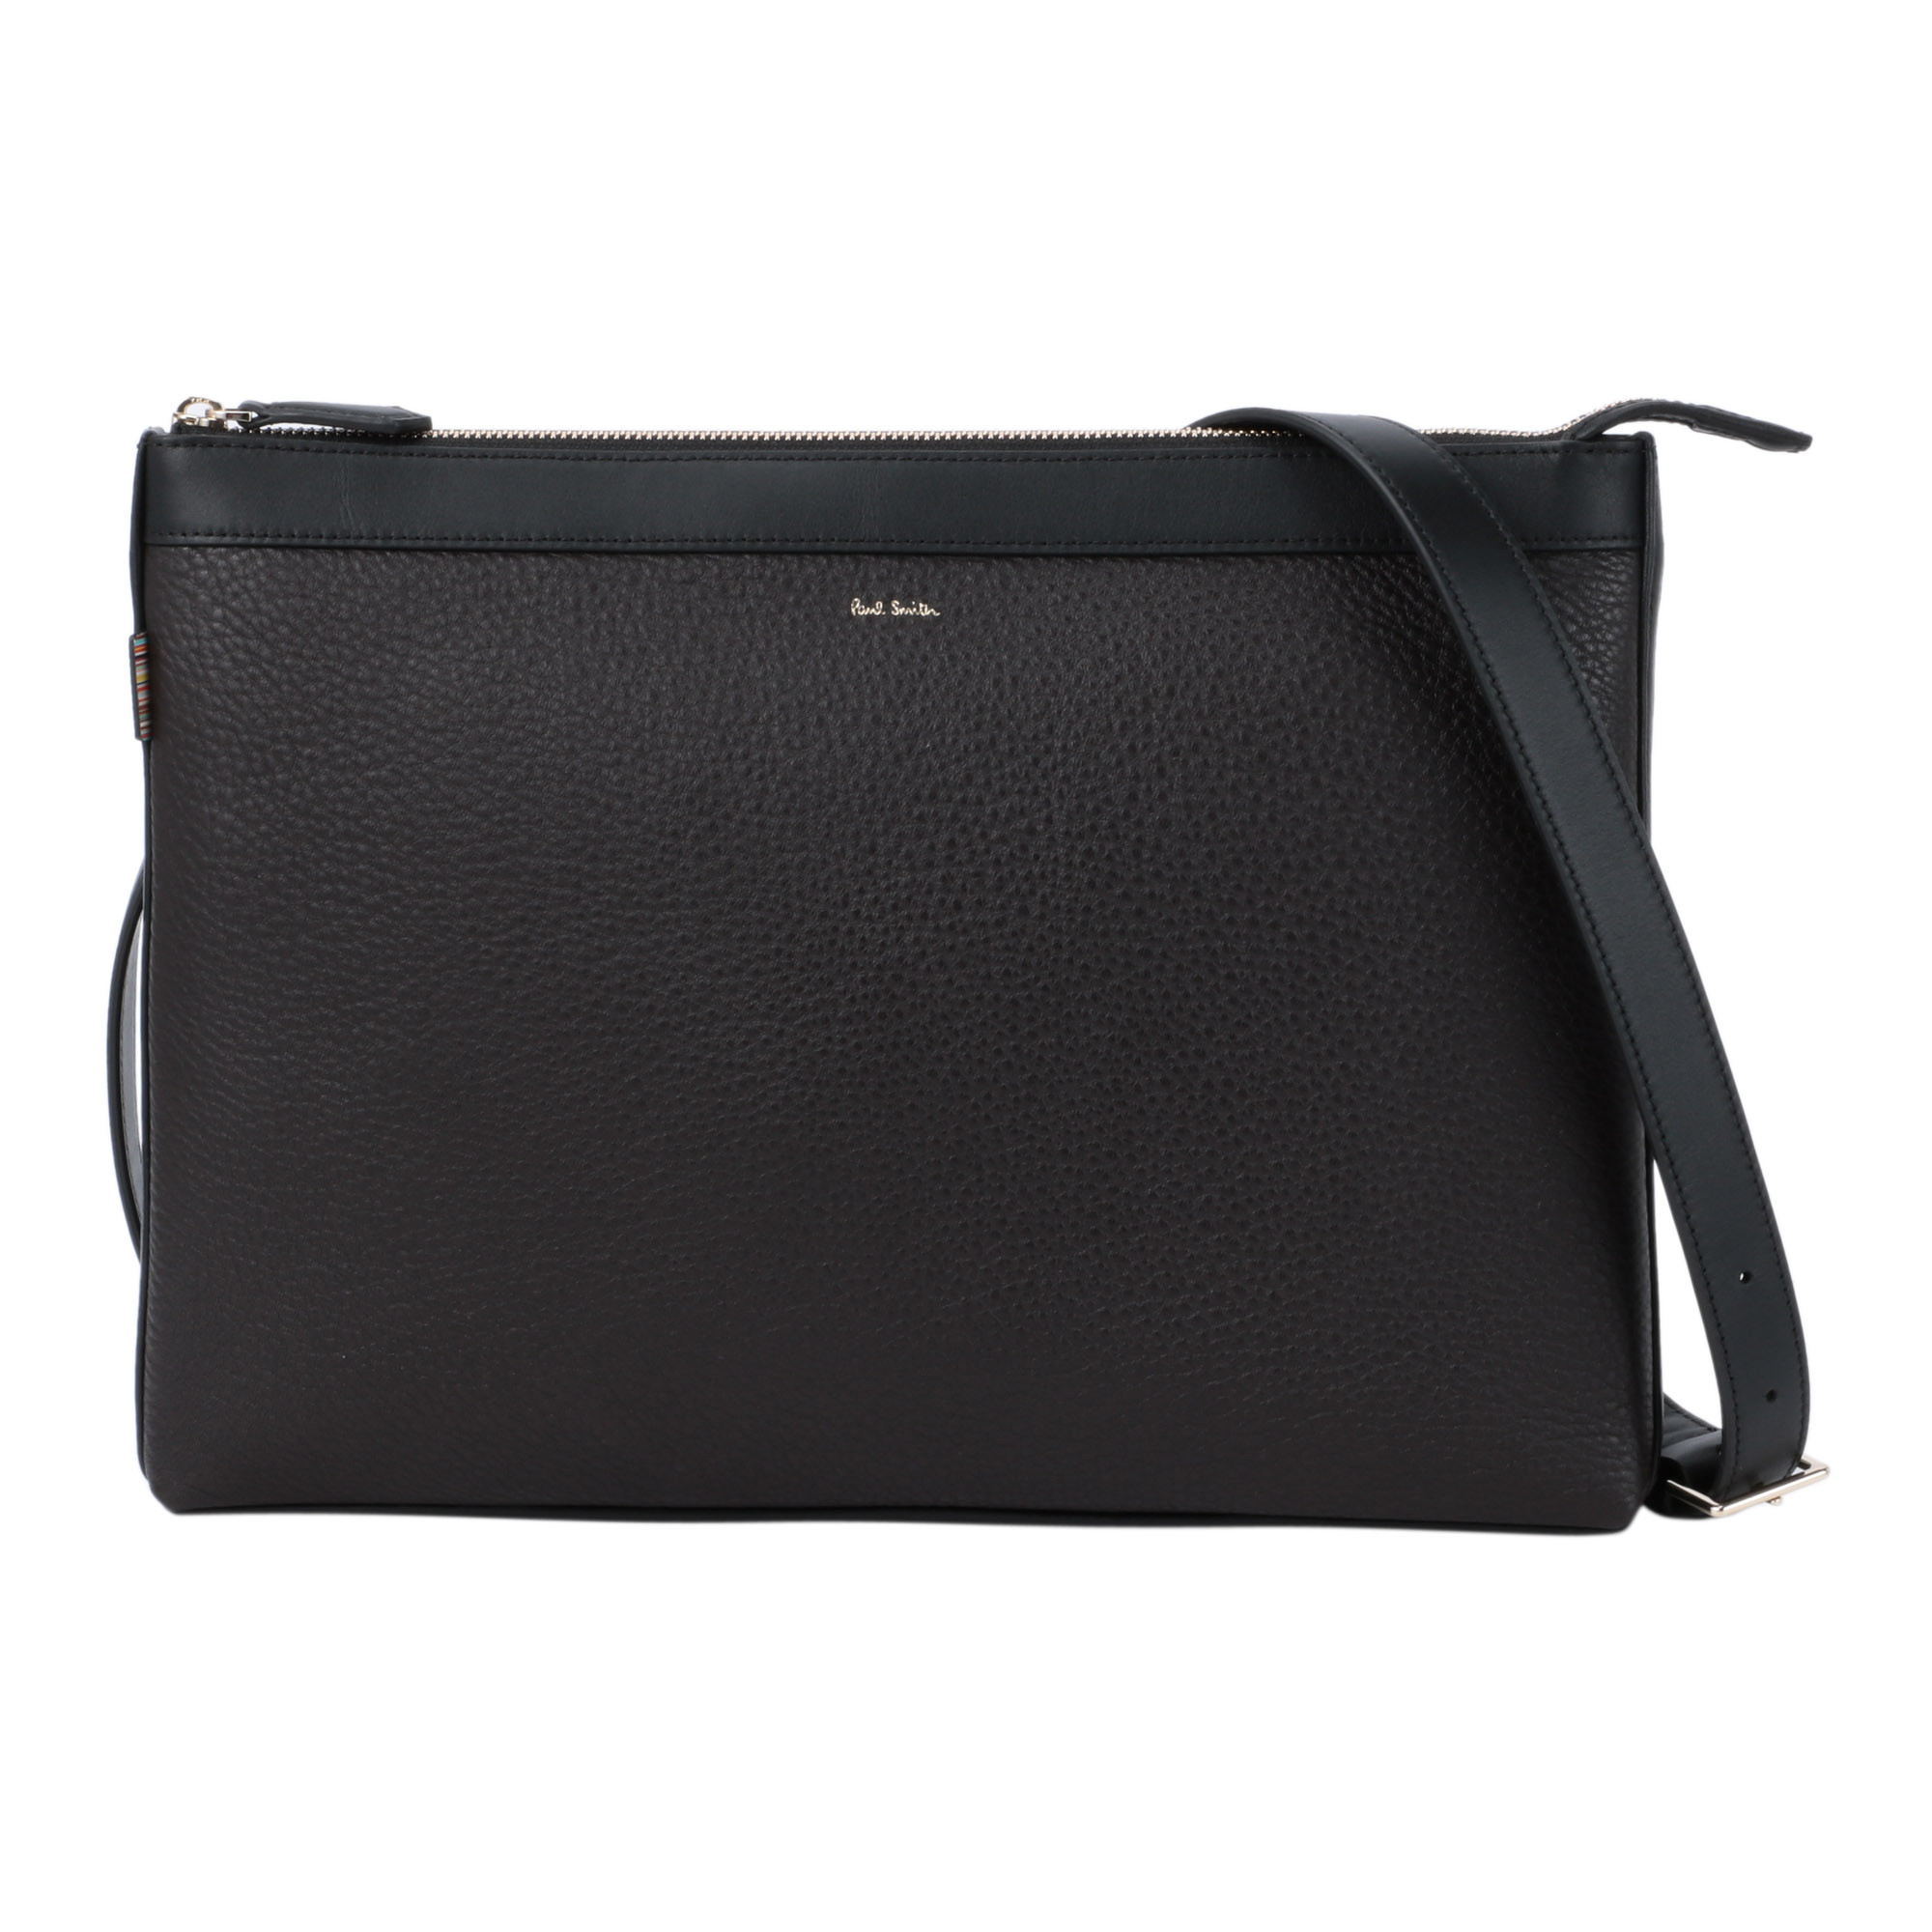 CITY TRAVEL LEATHER CLUTCH BAG